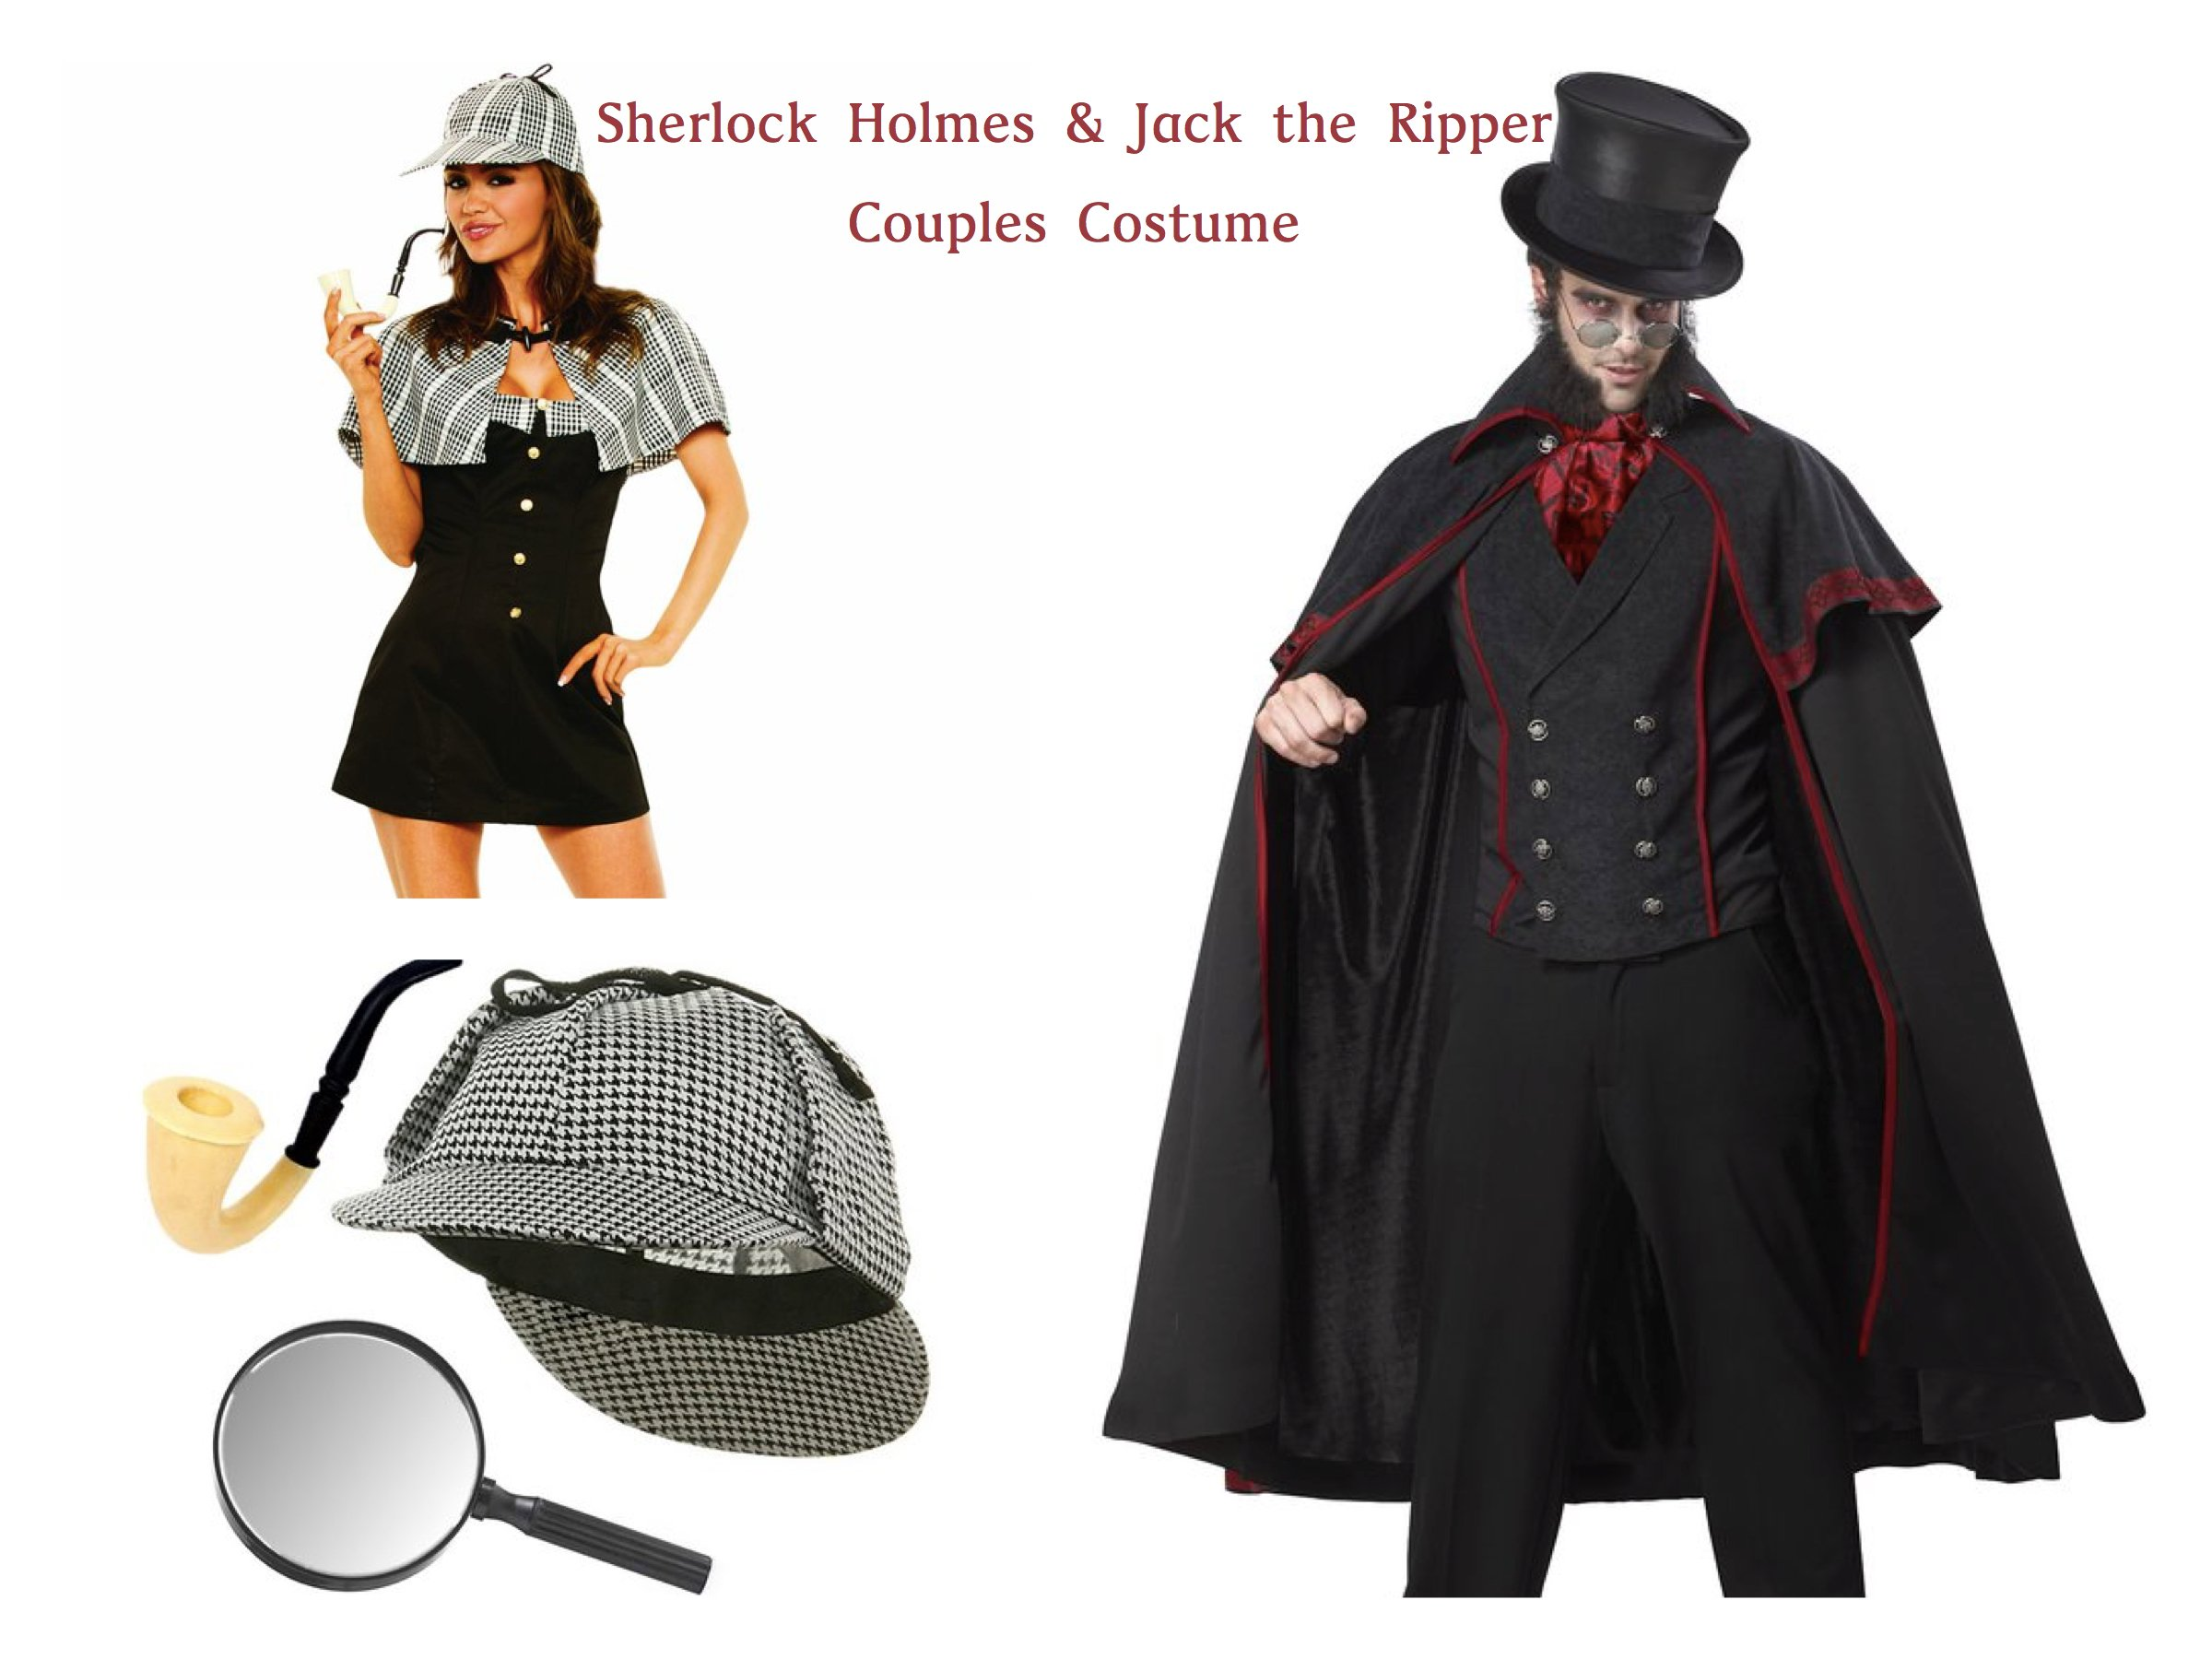 Sherlock Holmes & Jack the Ripper Couples Costume